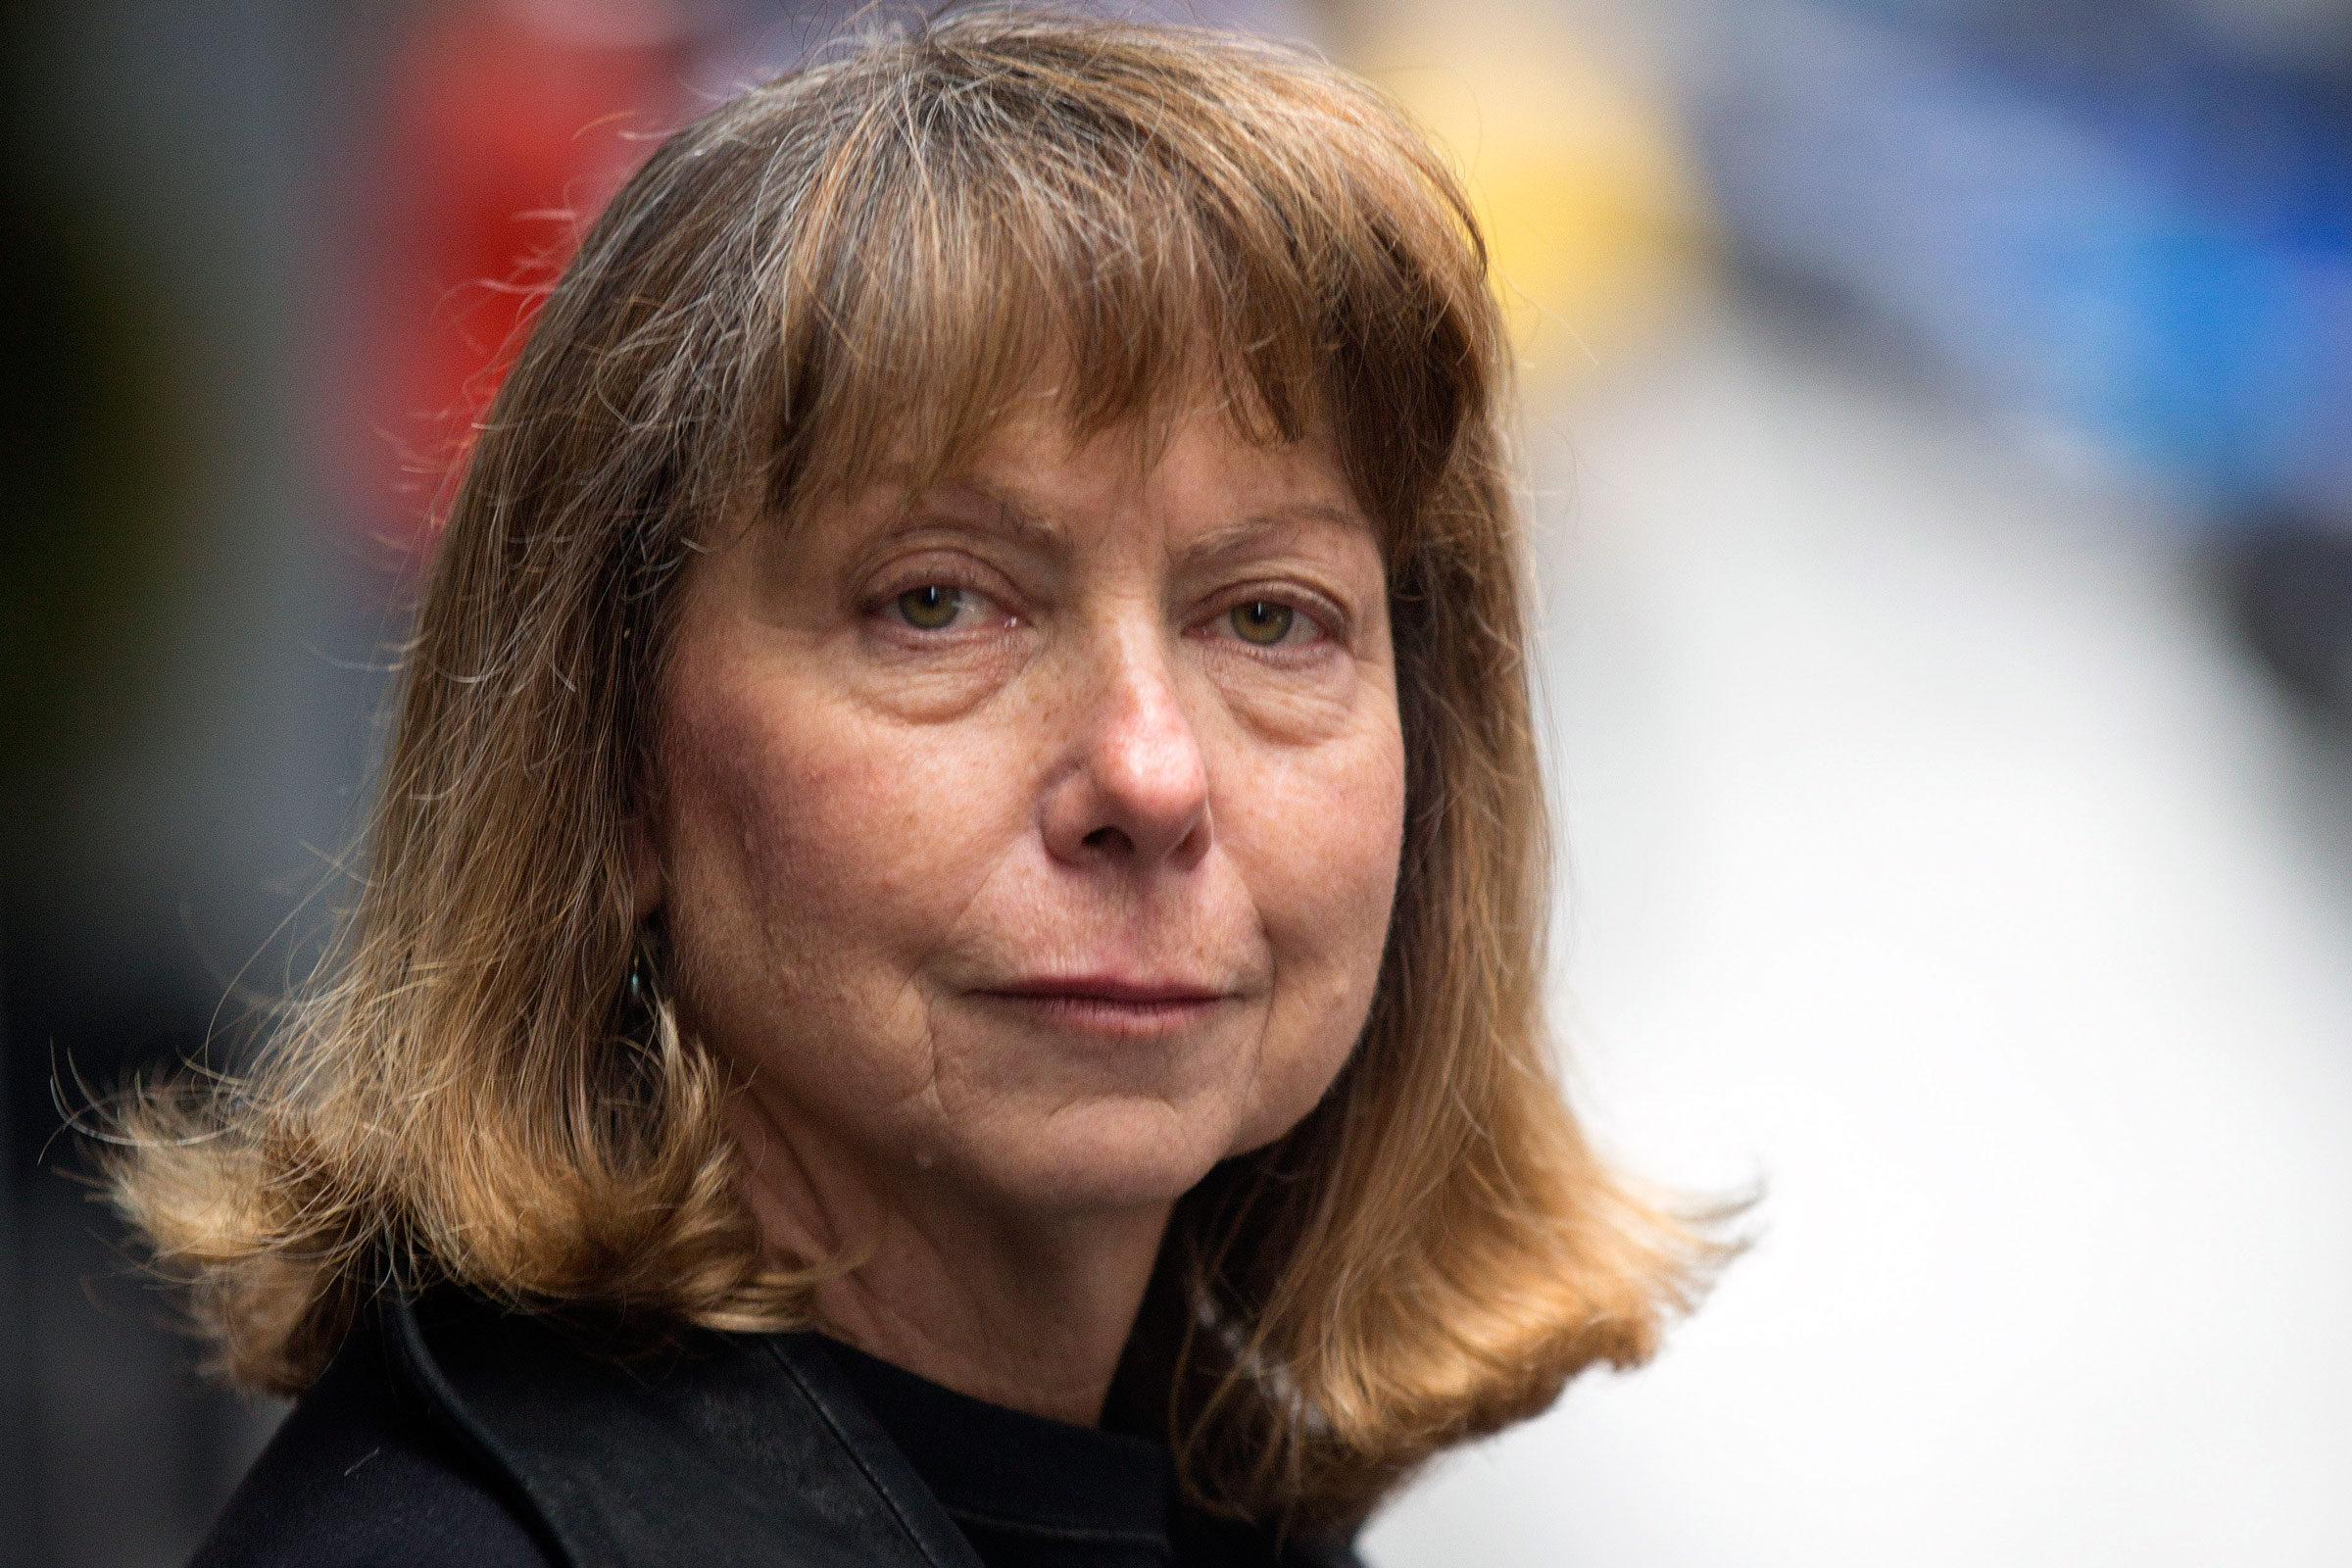 Jill Abramson Plagiarized My Writing. So I Interviewed Her About It